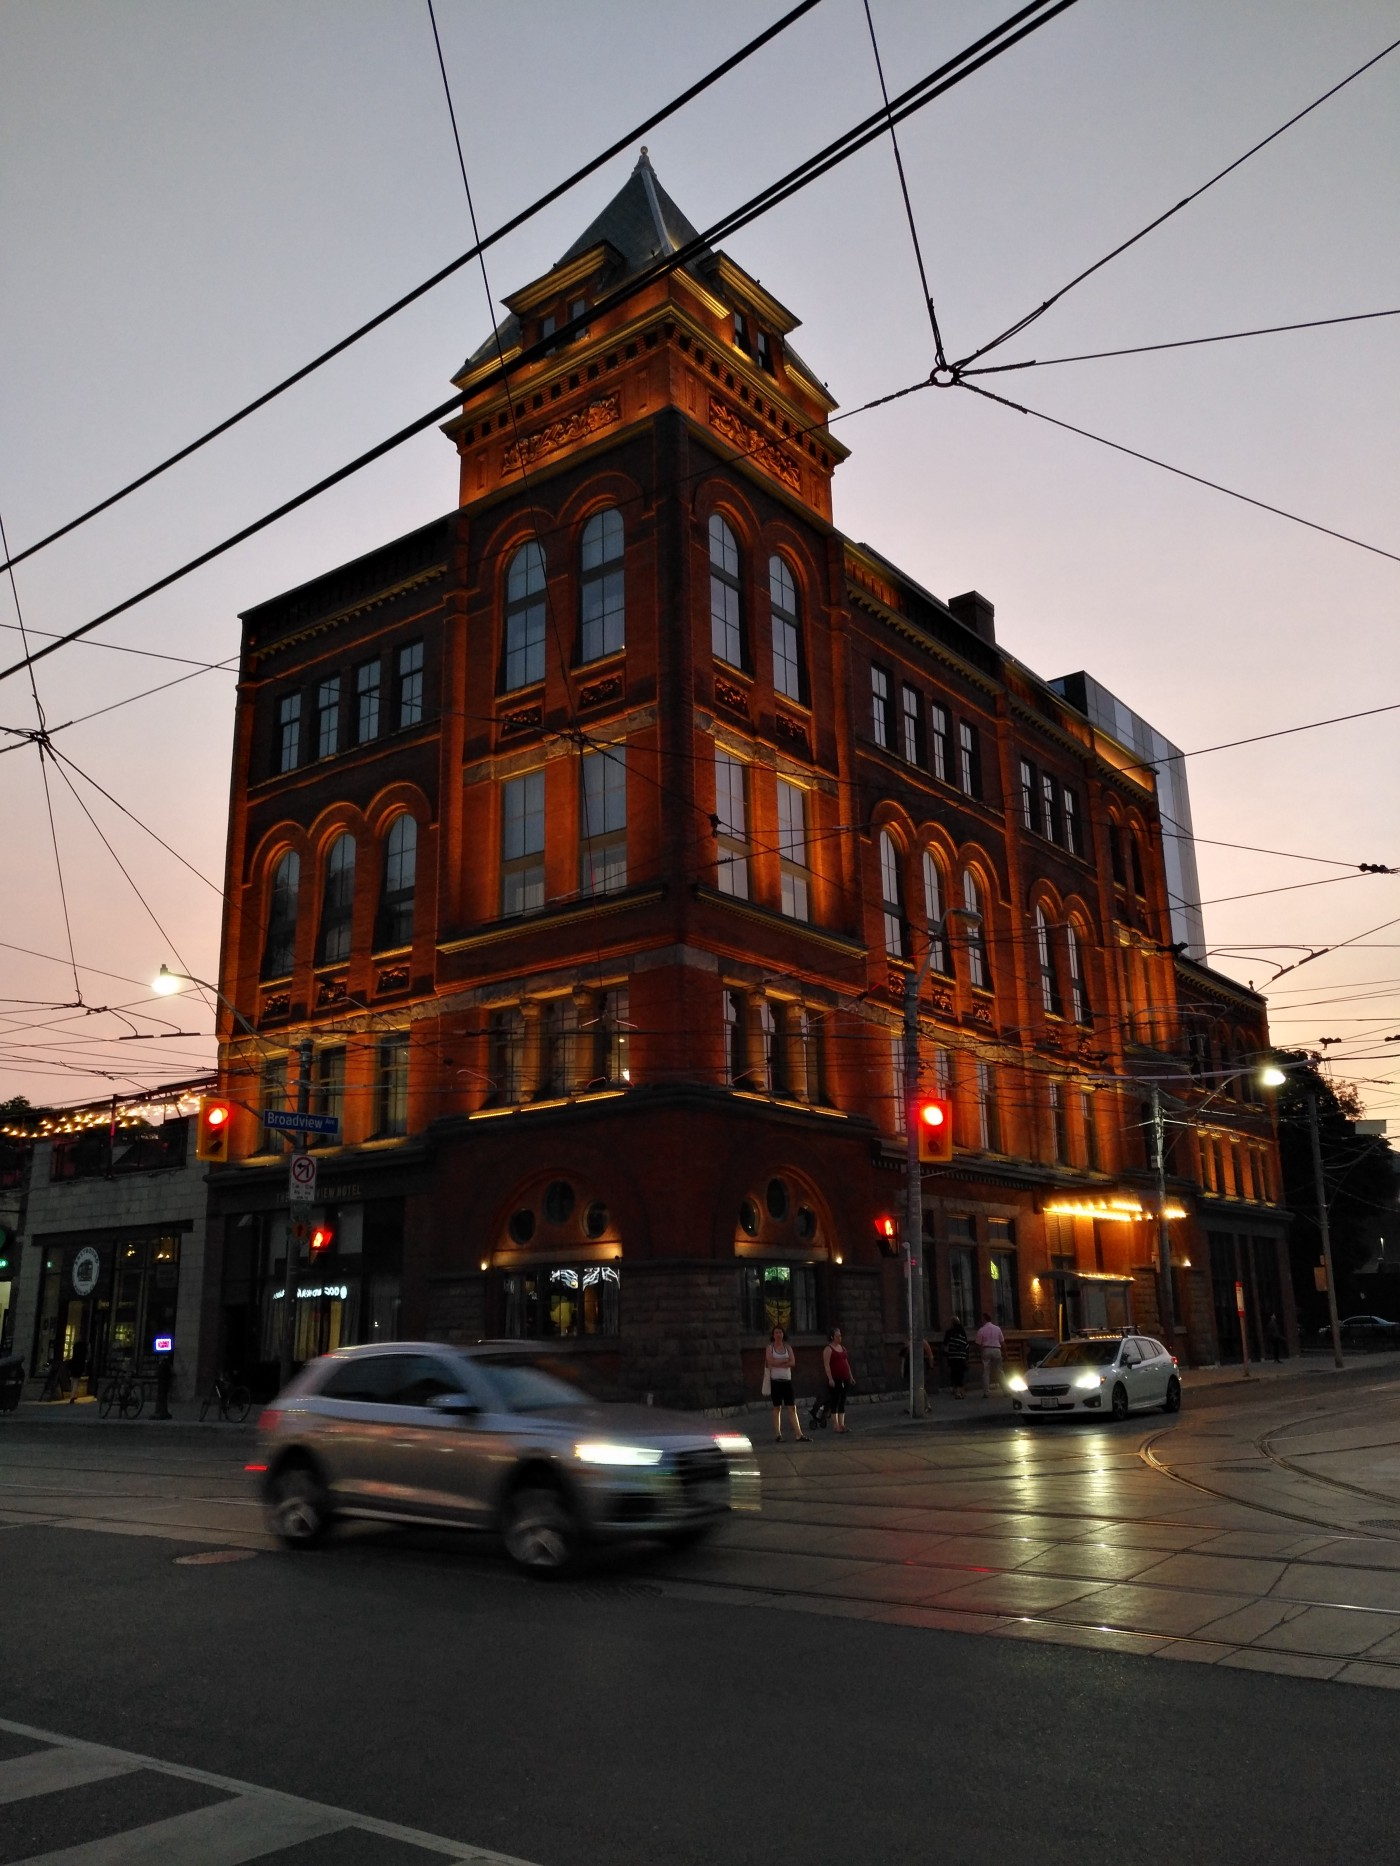 A Romanesque Revival style building at dusk at a major intersection with cars passing through.